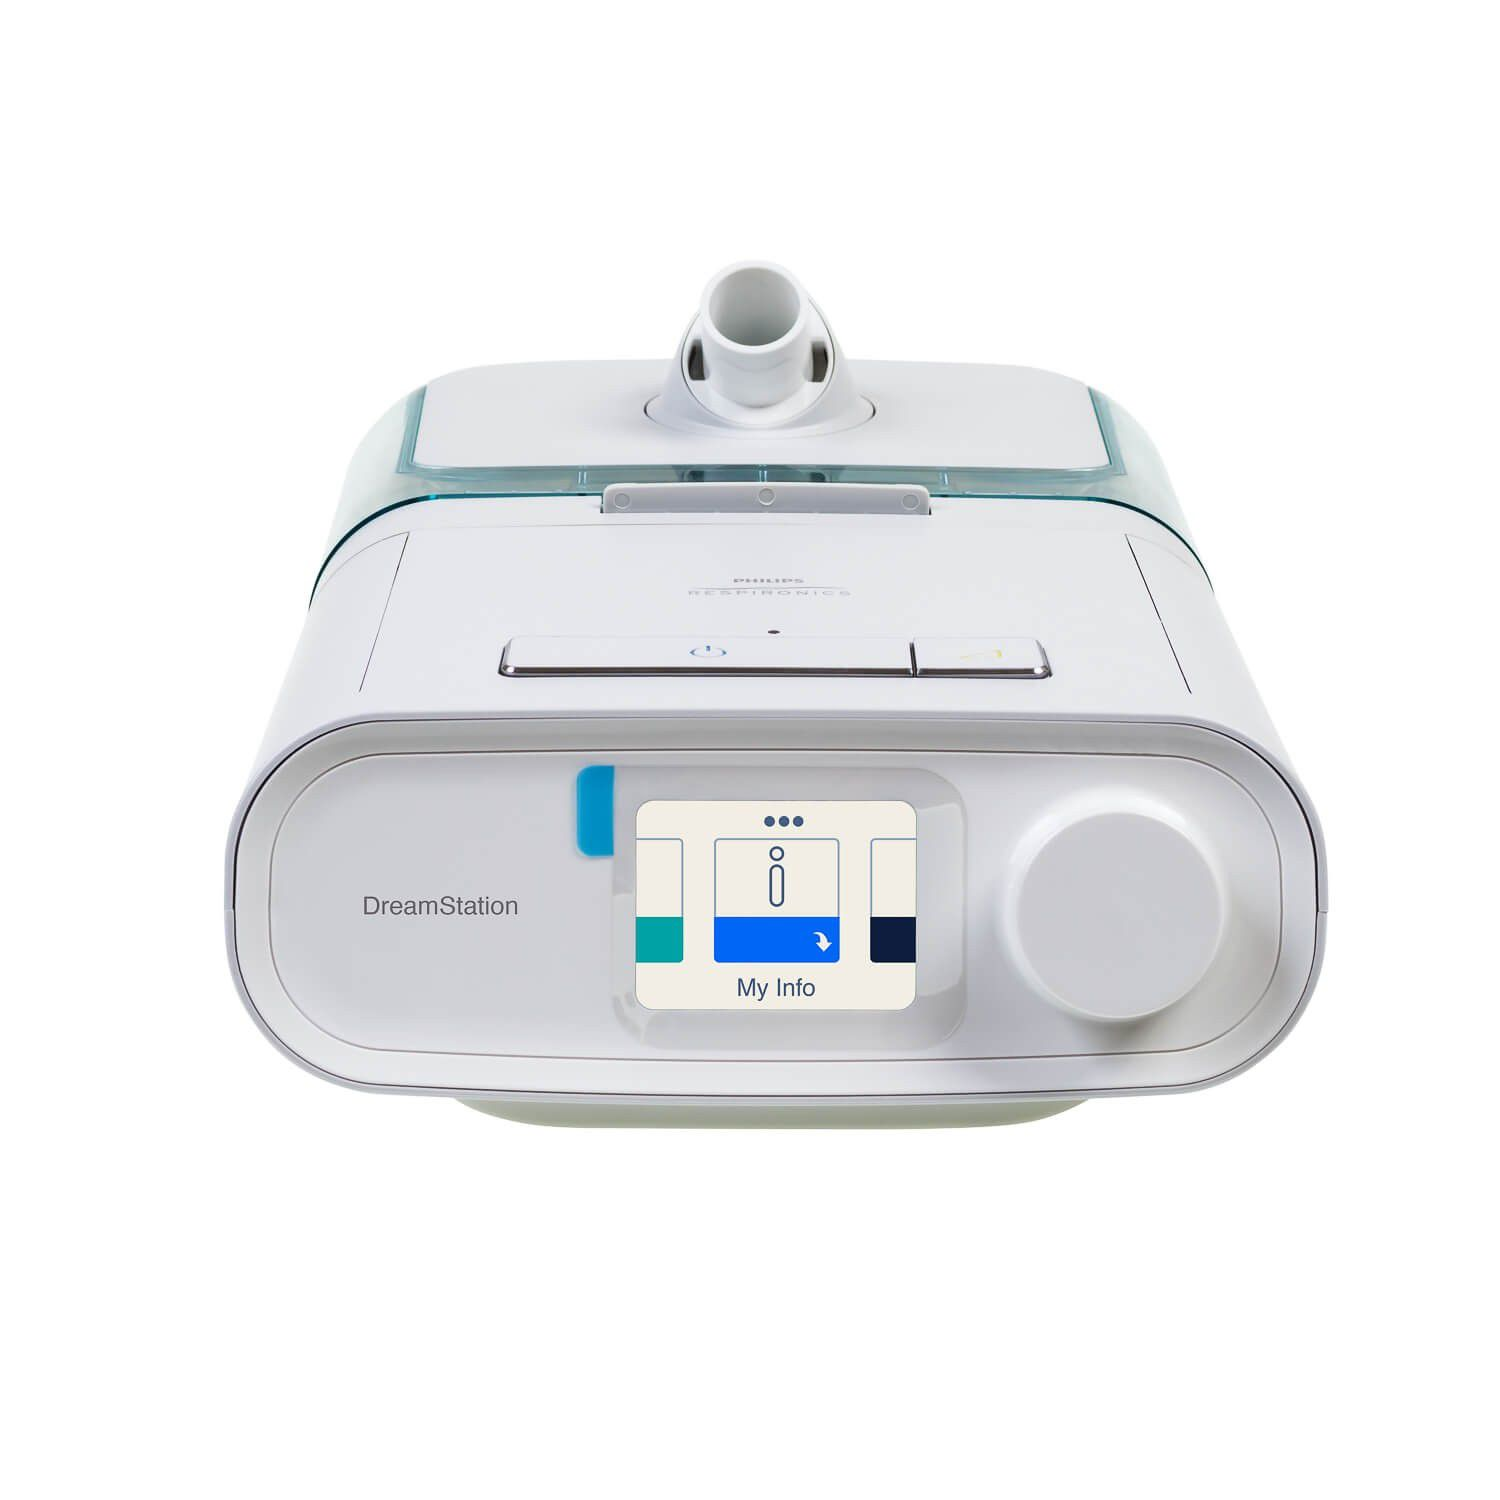 Kit CPAP Automático DreamStation com Umidificador Philips Respironics